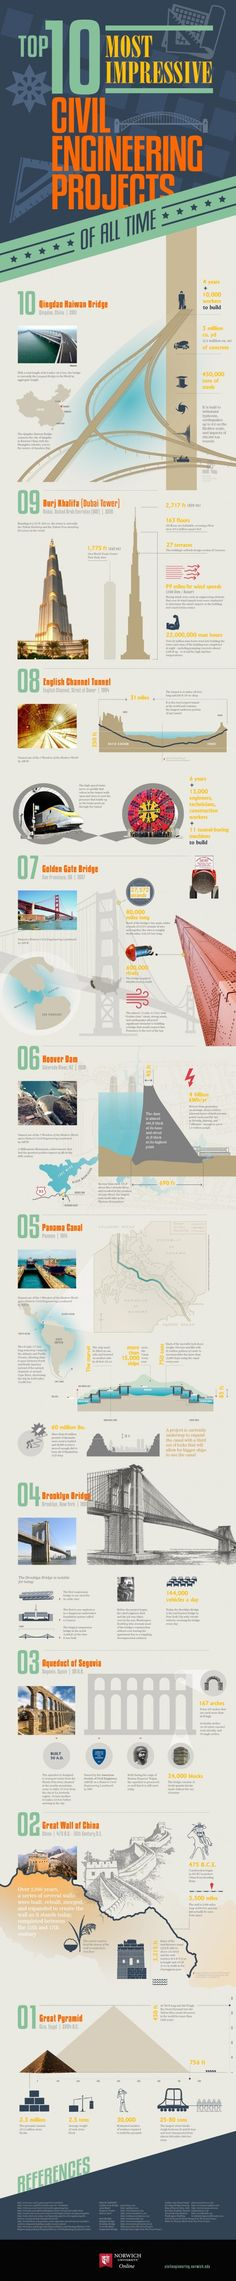 166 Best Quotes and Infographics about Architecture images